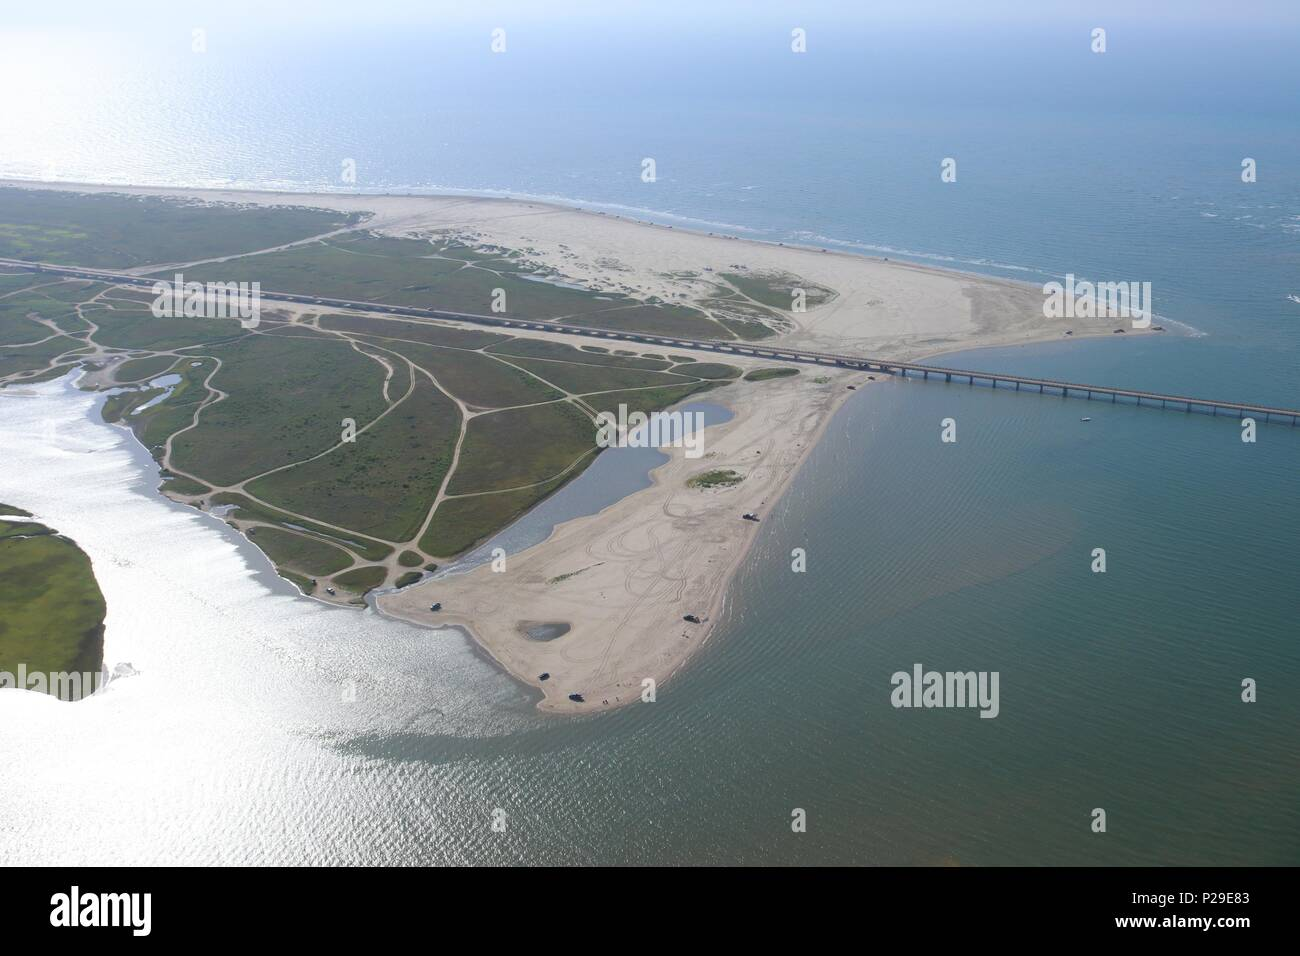 Aerial view of the Texas Gulf Coast, Galveston Island,USA. Haze due to warm weather conditions. View of San Luis Beach, San Luis Pass and Pointe West. Stock Photo